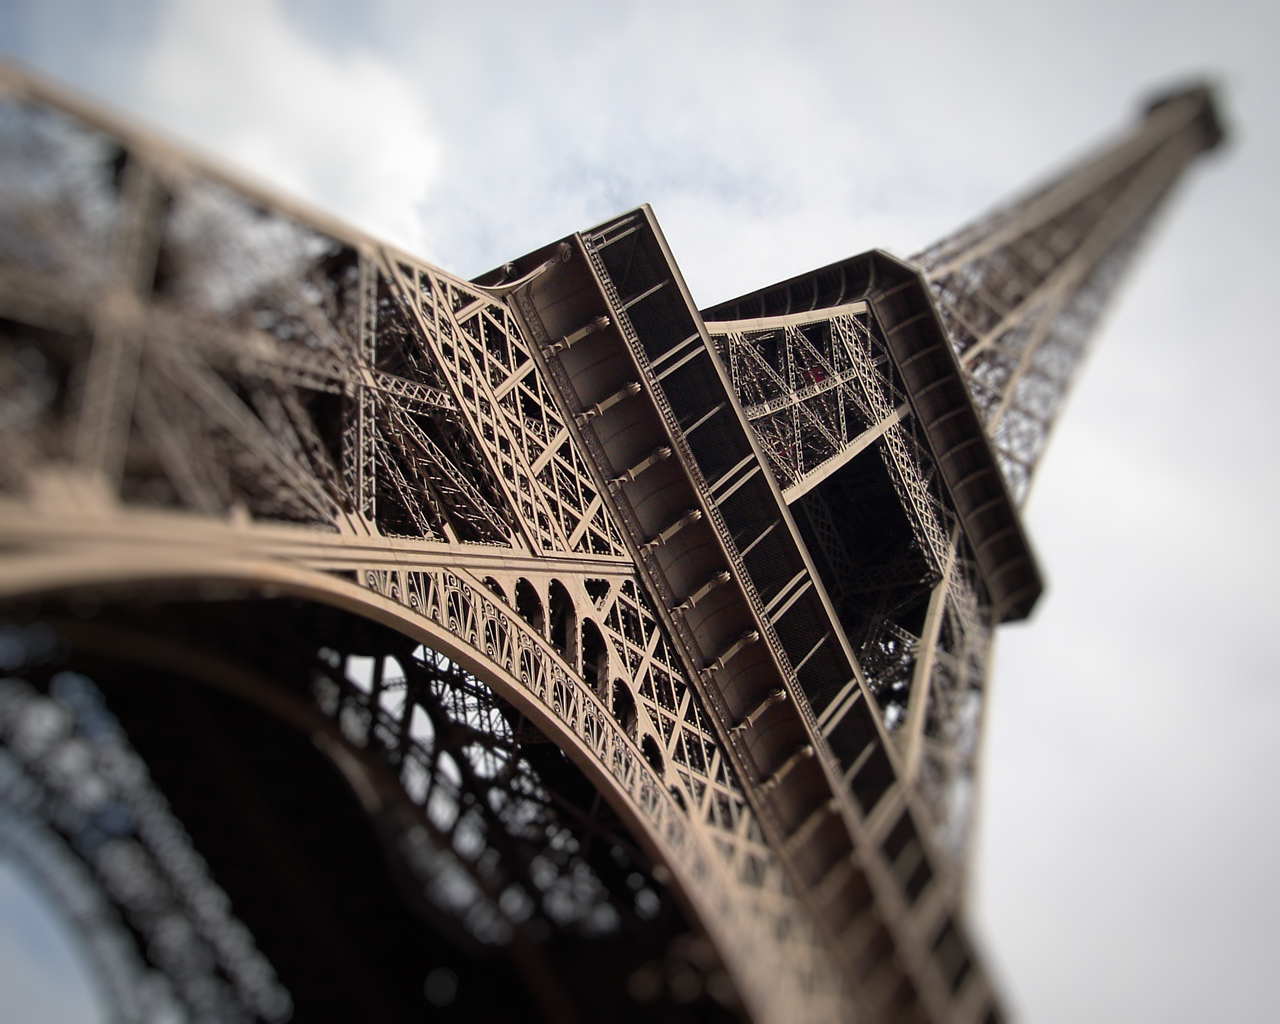 1280x1024 Eiffel base desktop wallpapers and stock photos